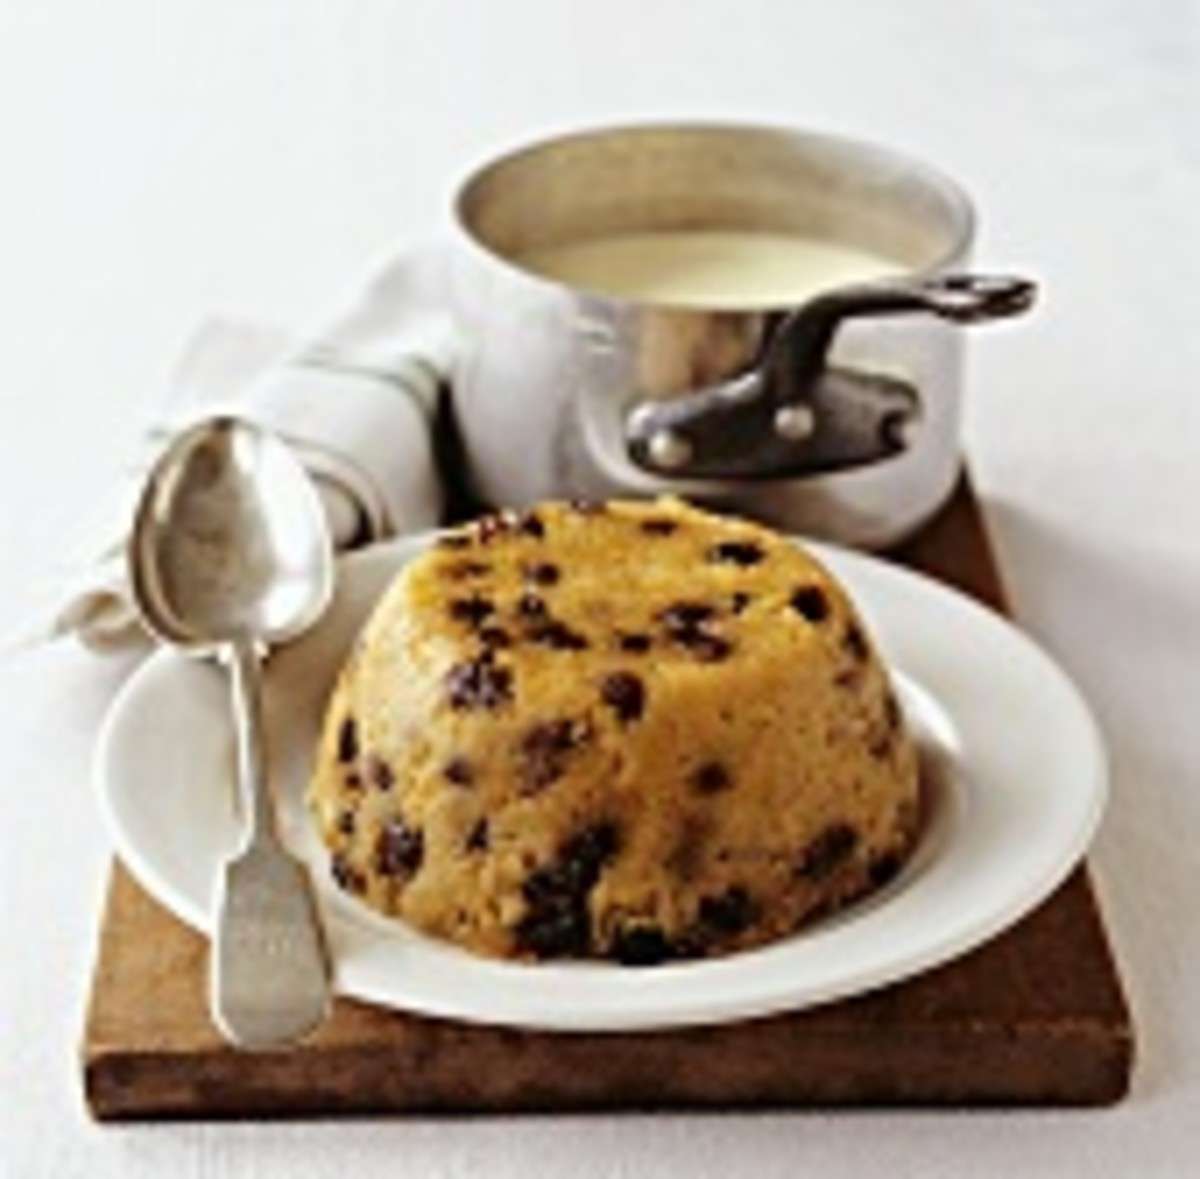 Special winter treat - Traditional Spotted Dick and real English Custard recipes. A taste of old England.